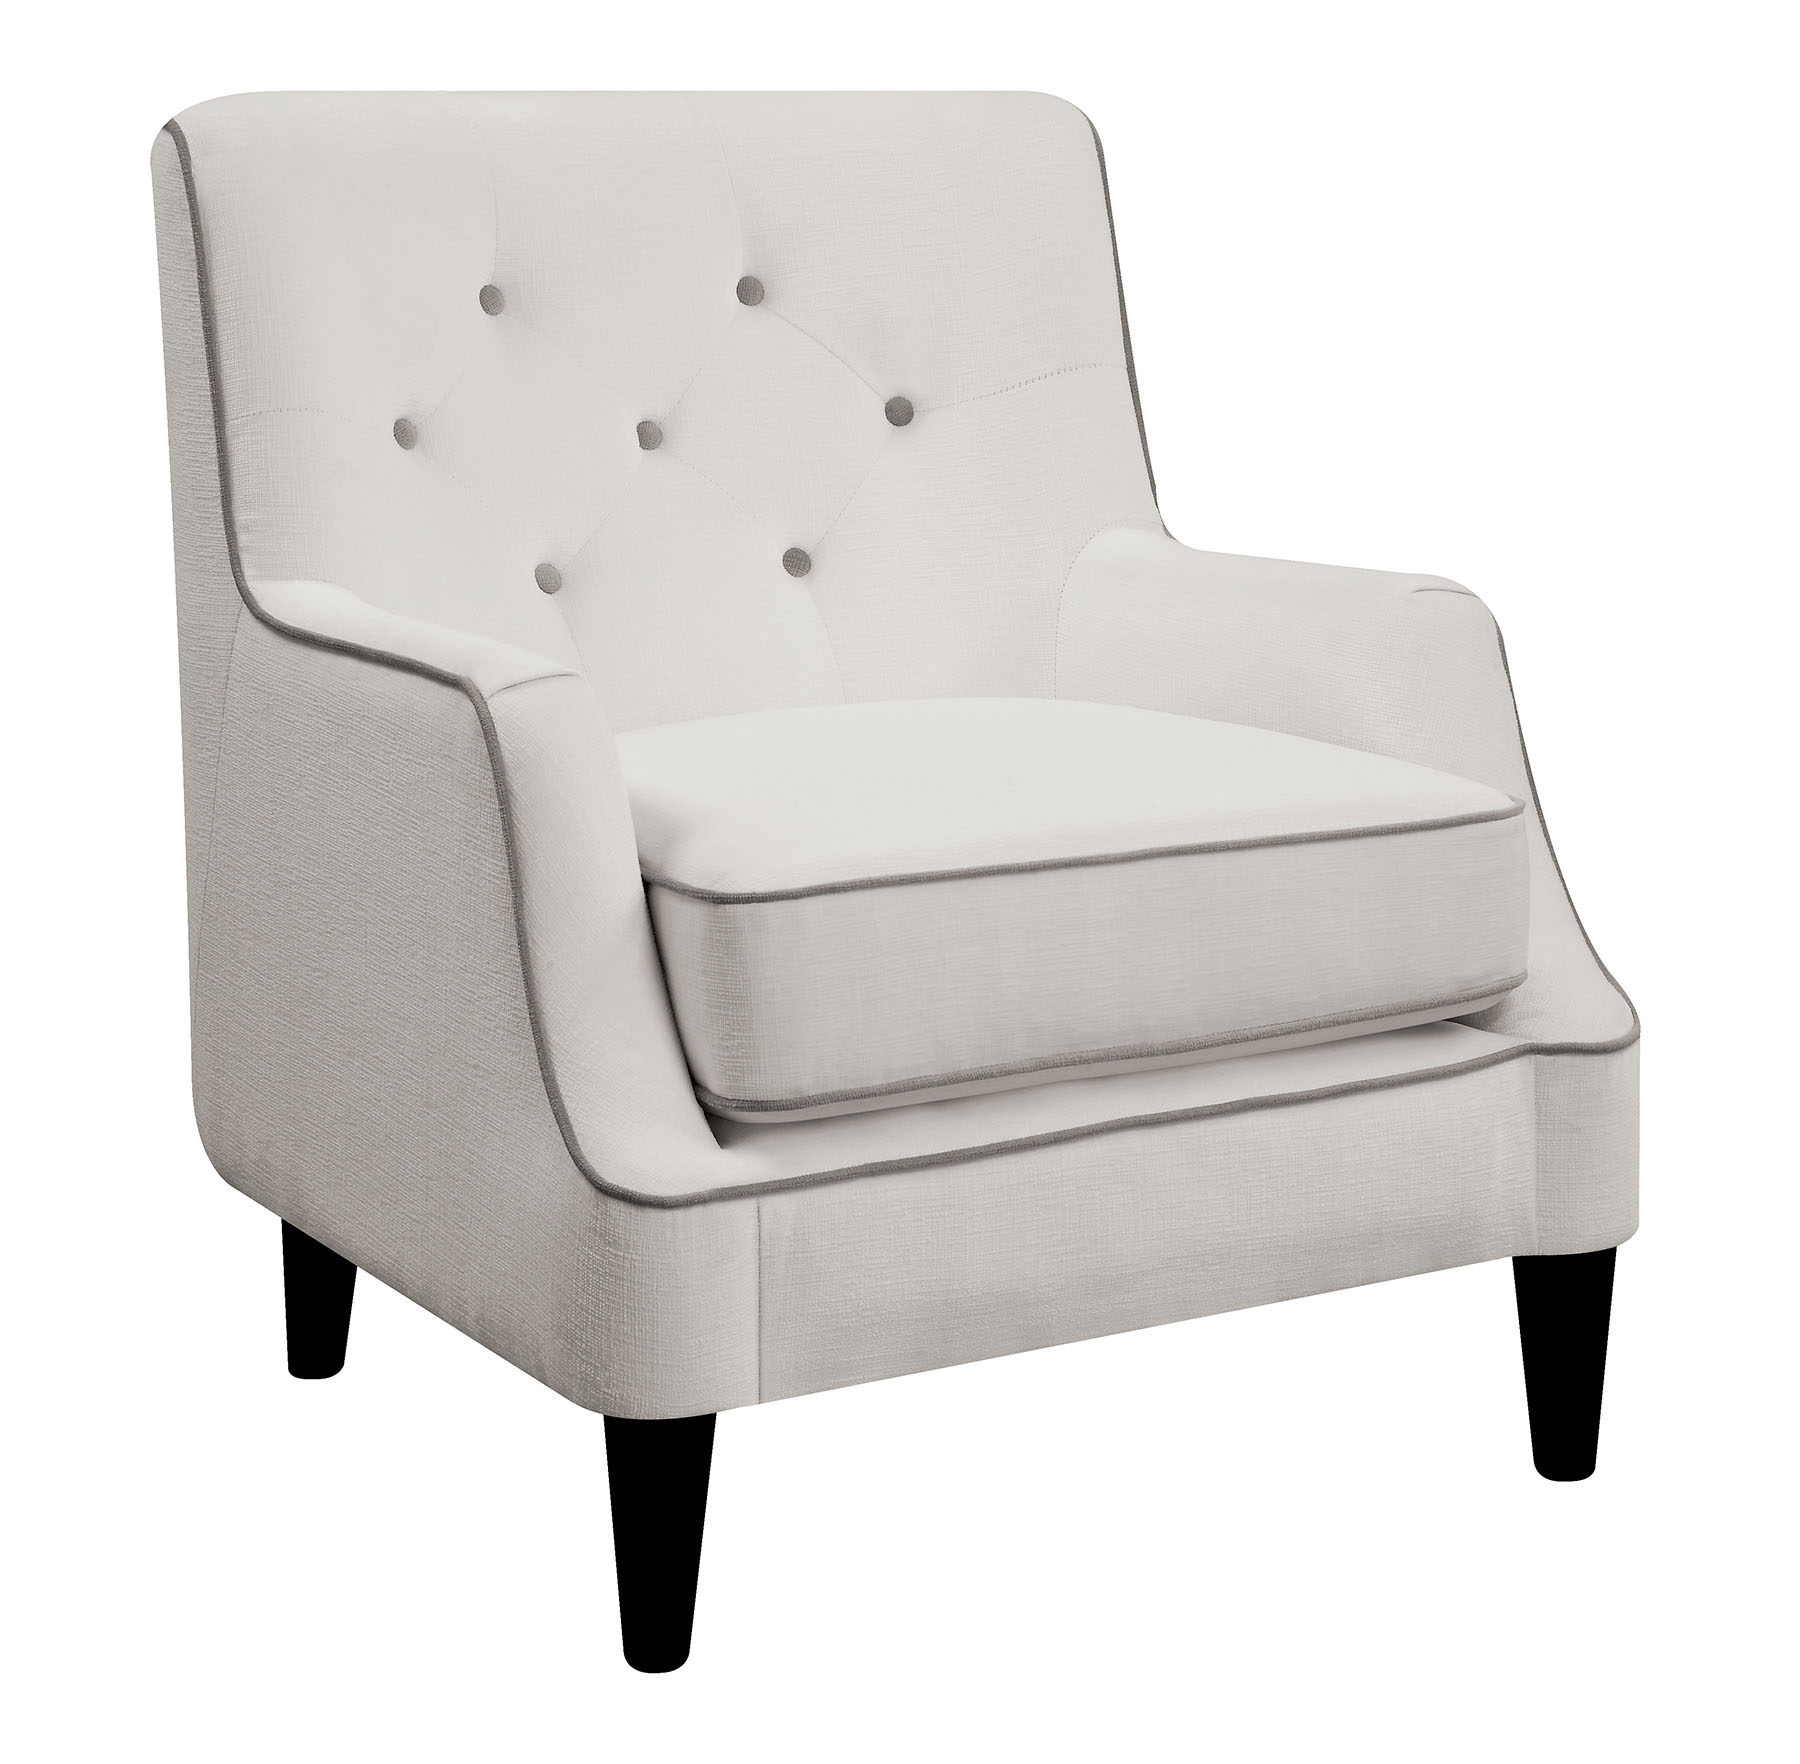 Pleasant Donny Osmond Home 902895 White Accent Chair With Gray Trim Andrewgaddart Wooden Chair Designs For Living Room Andrewgaddartcom